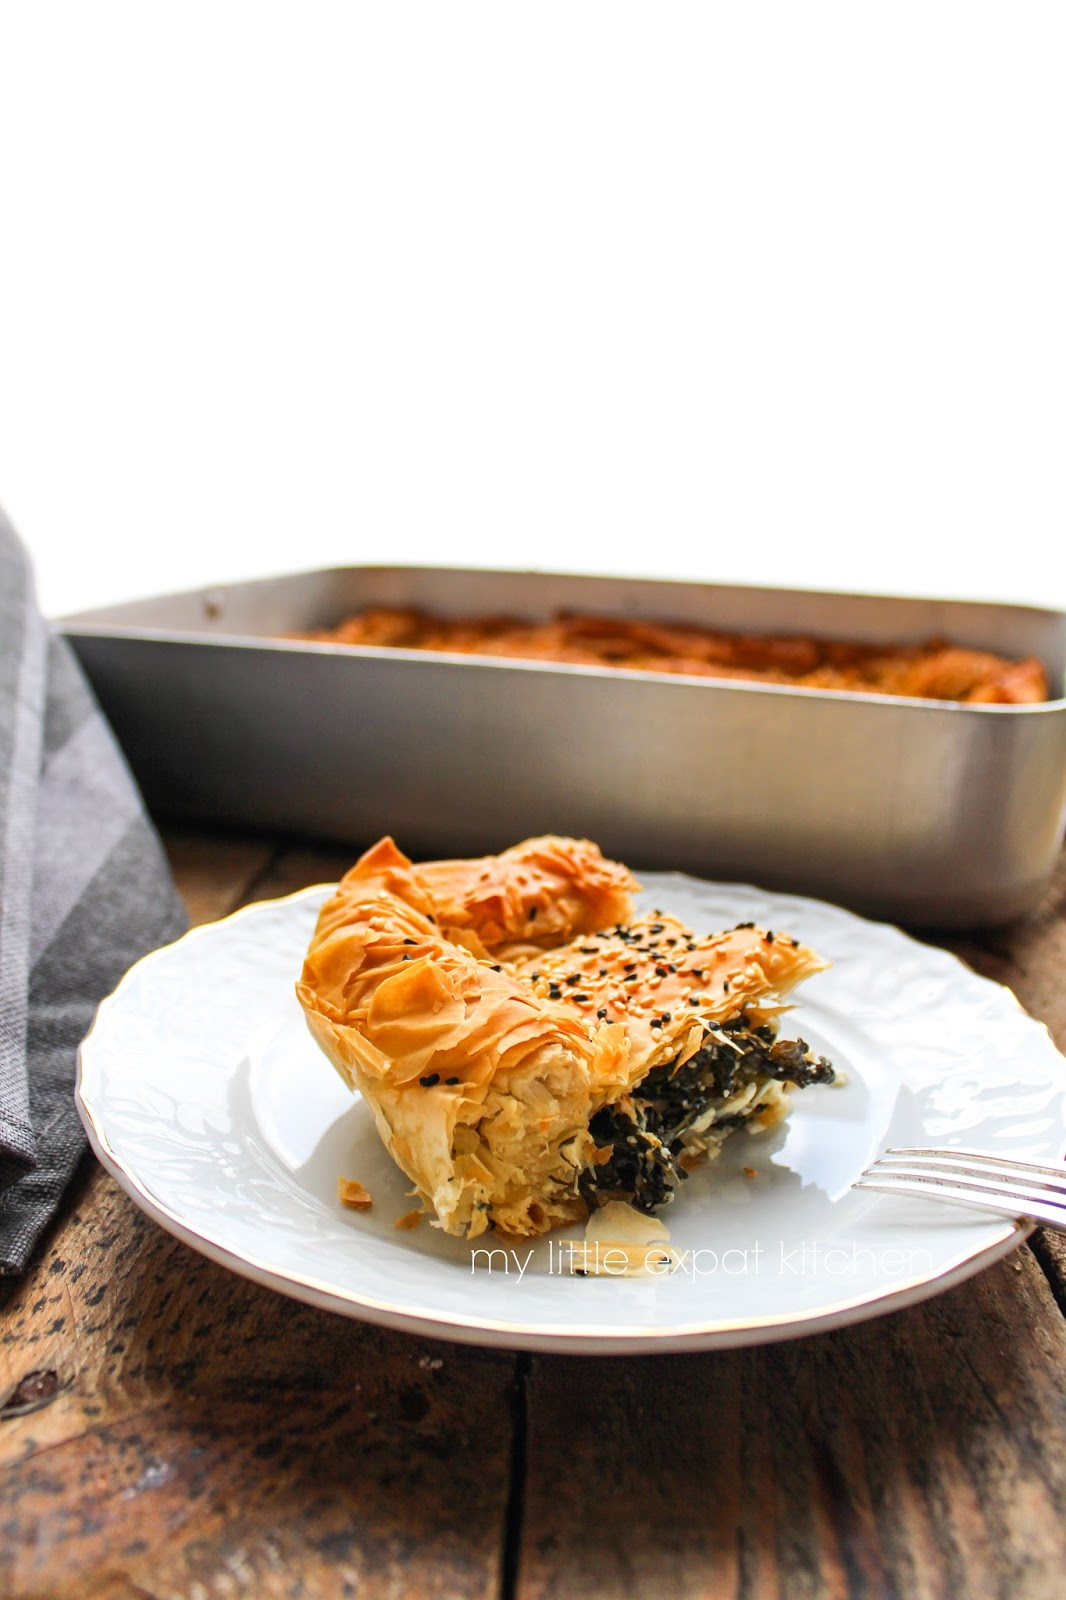 My Little Expat Kitchen: Greek phyllo pie with kale and feta